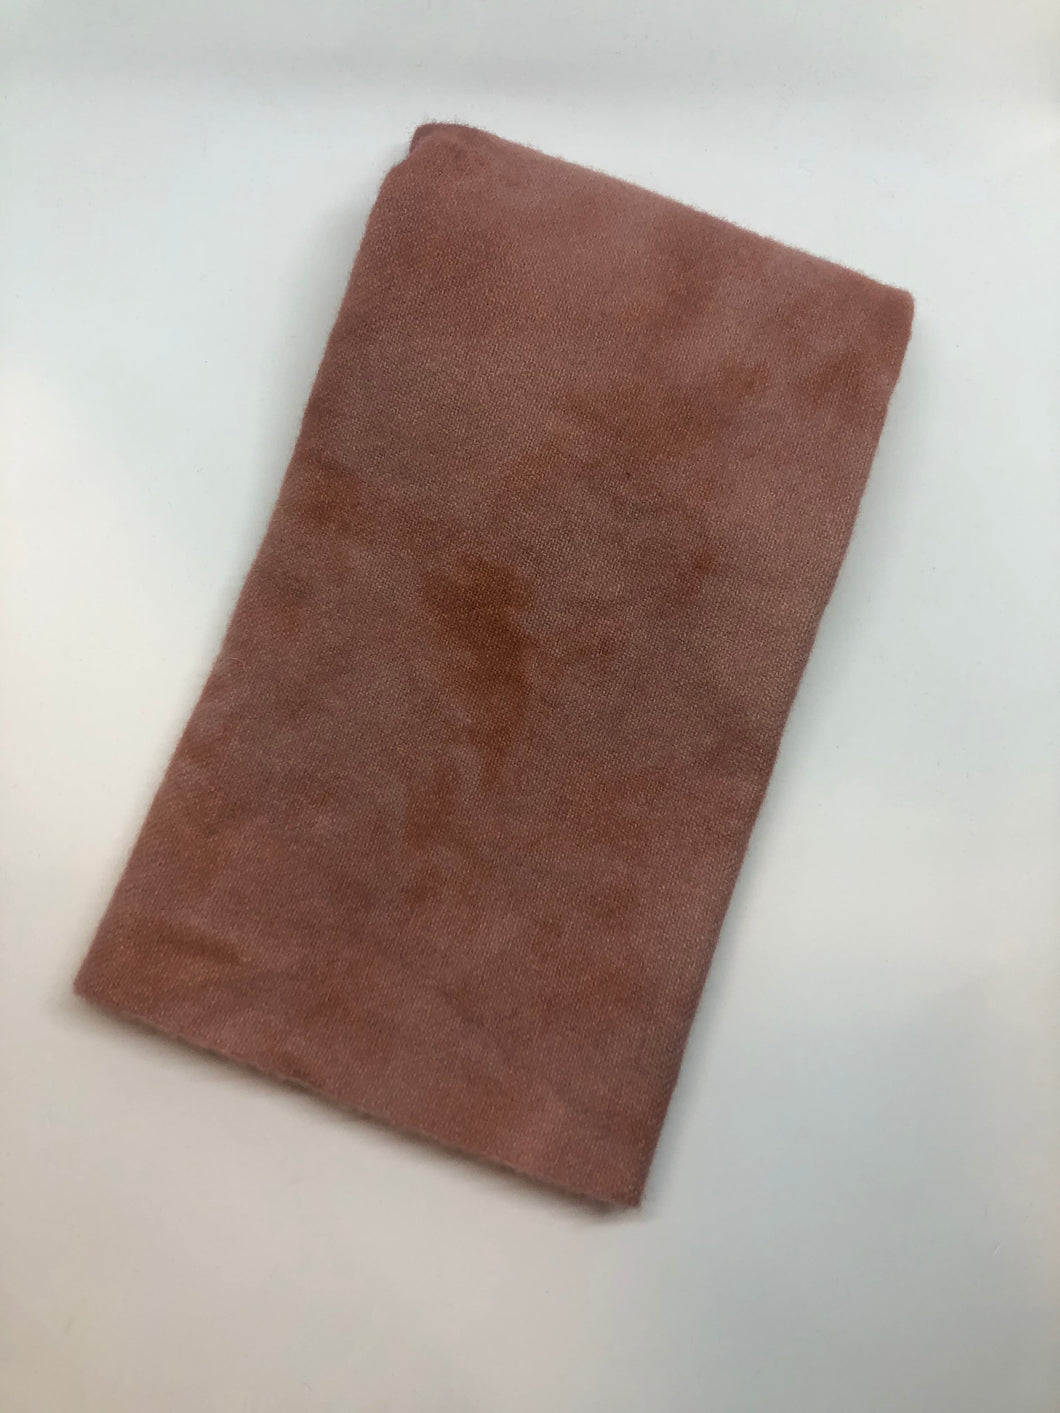 Hand dyed Wool Cloth - Redish Brown